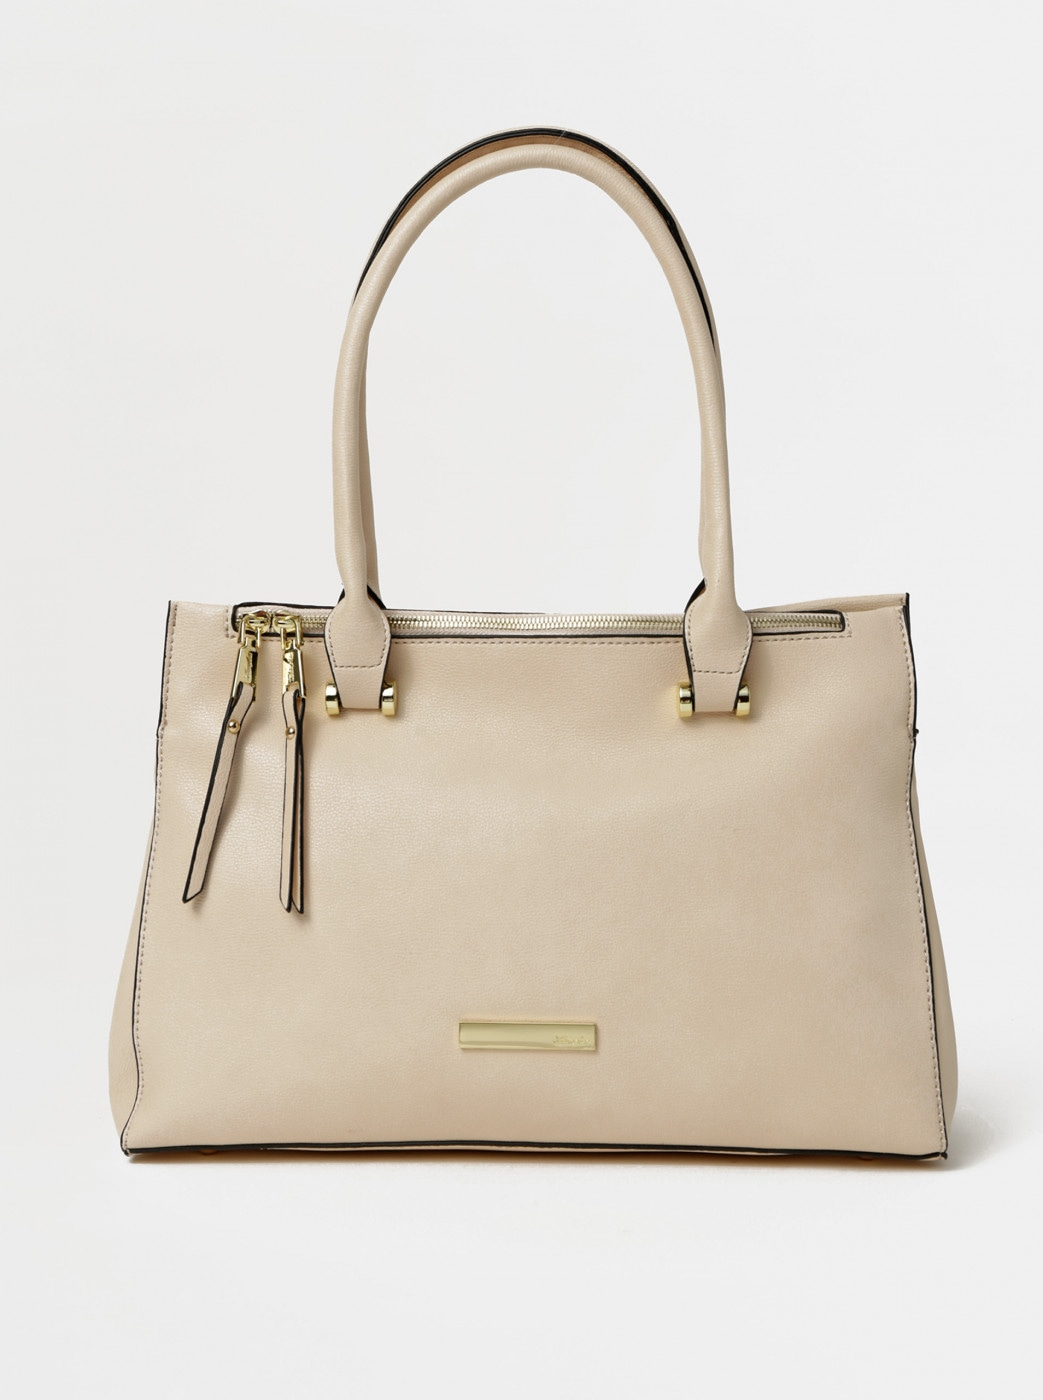 Hampton Off-white handbag